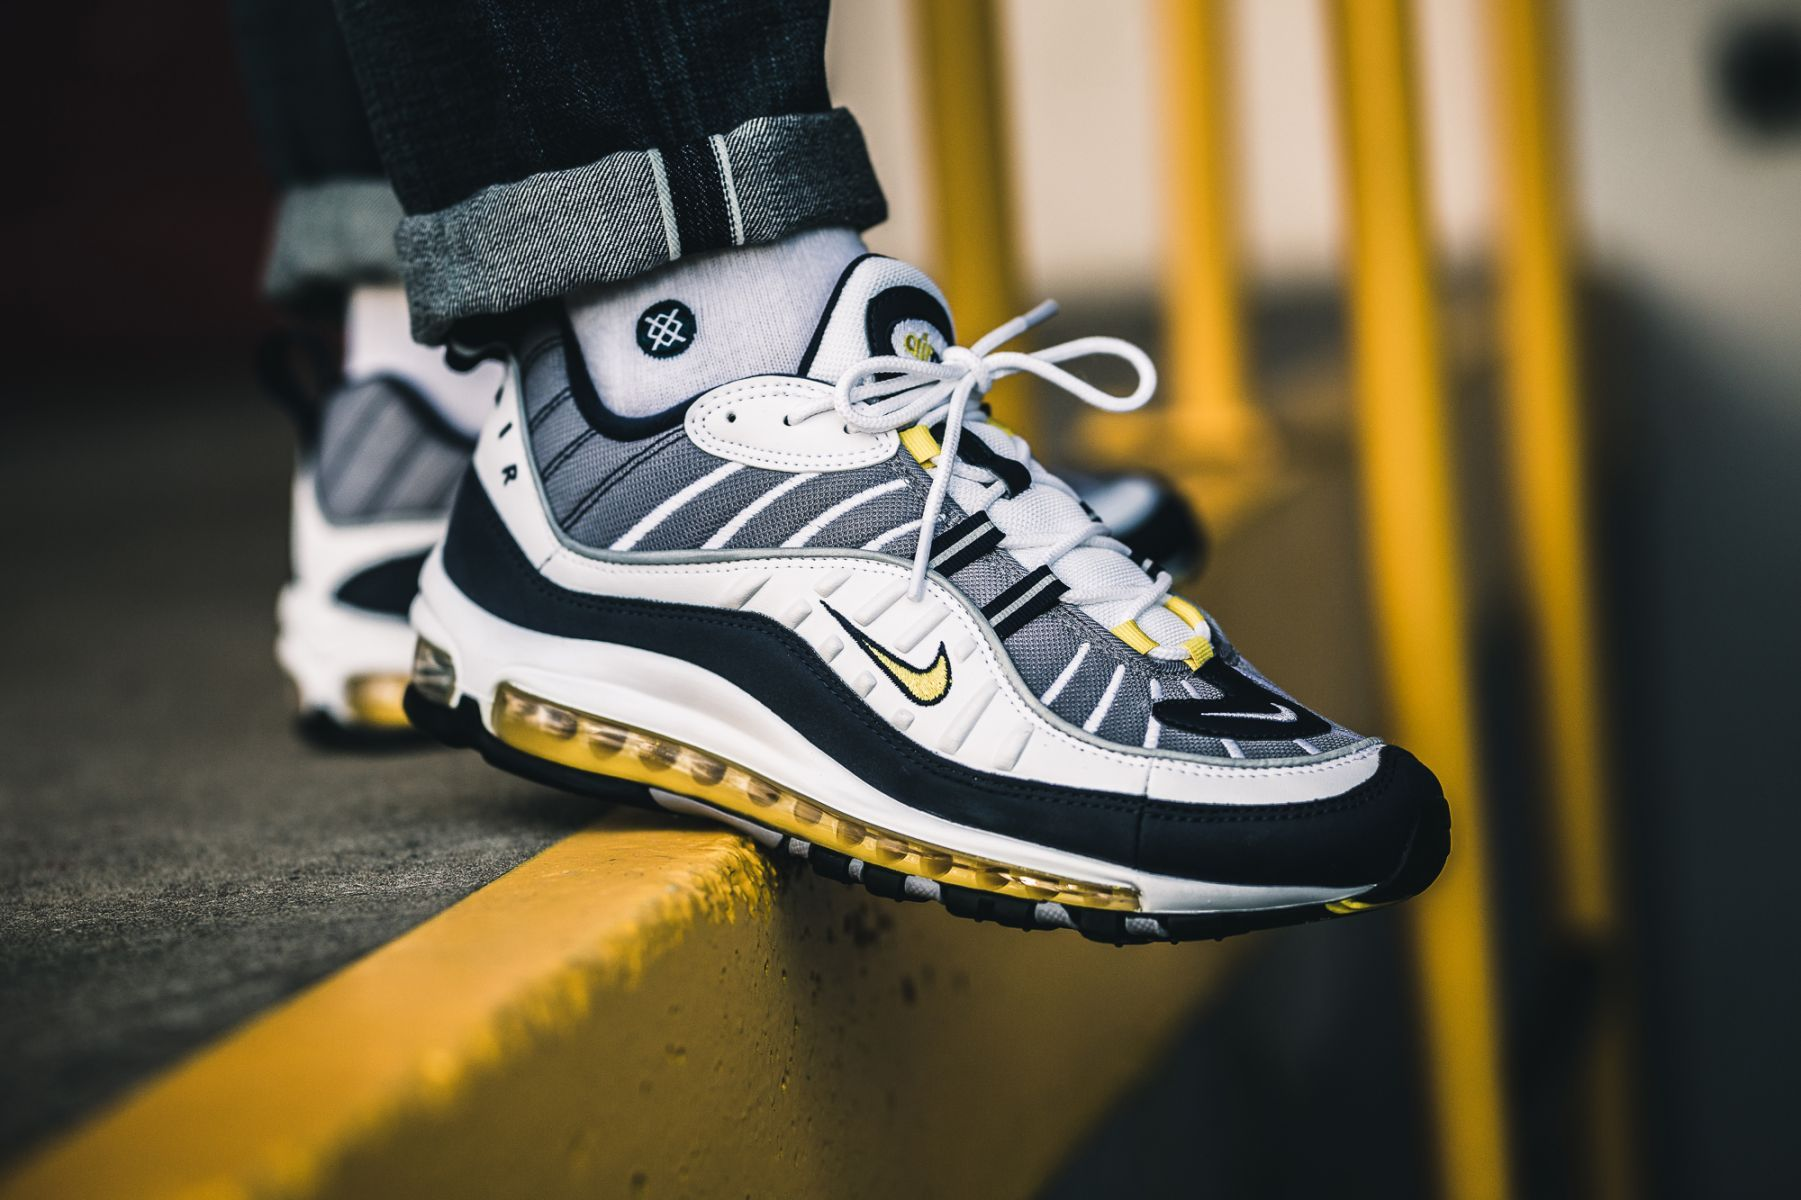 Nike Air Max 98 Tour Yellow | Chaussures nike, Chaussure, Nike